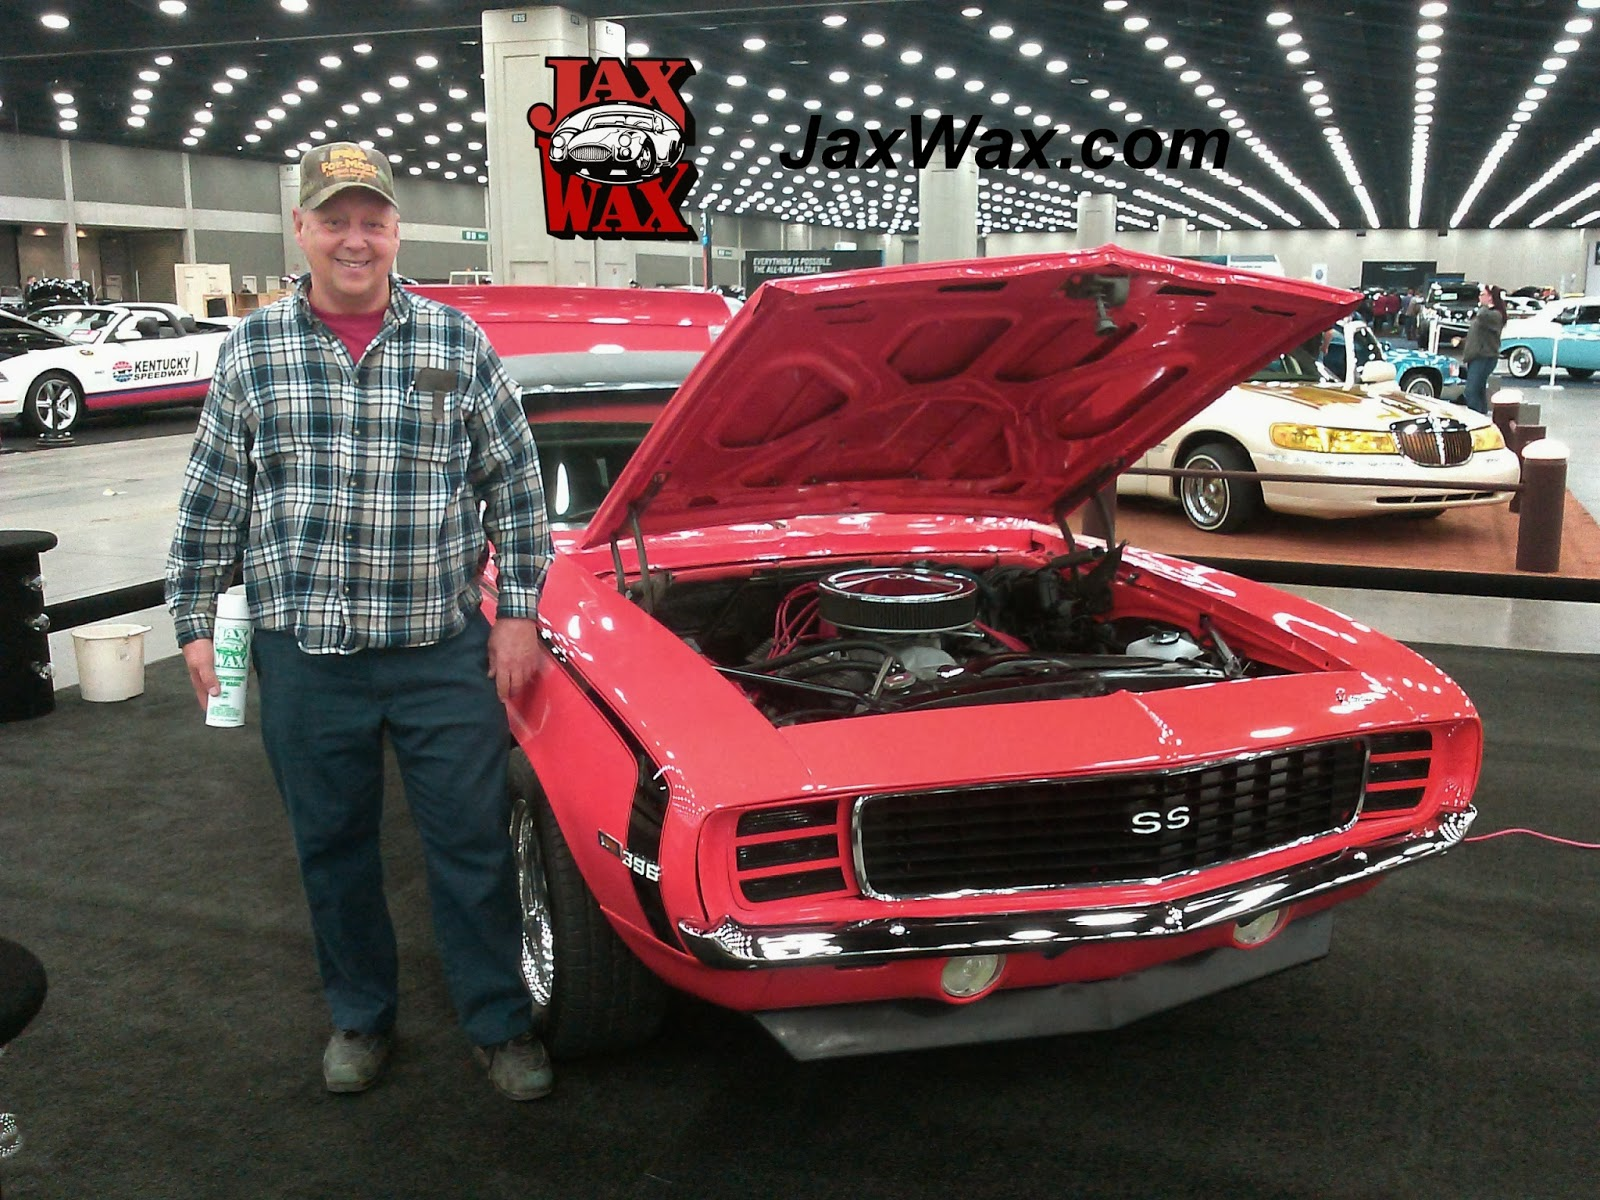 1969 Chevy Camaro SS Carl Casper Auto Show Jax Wax Customer